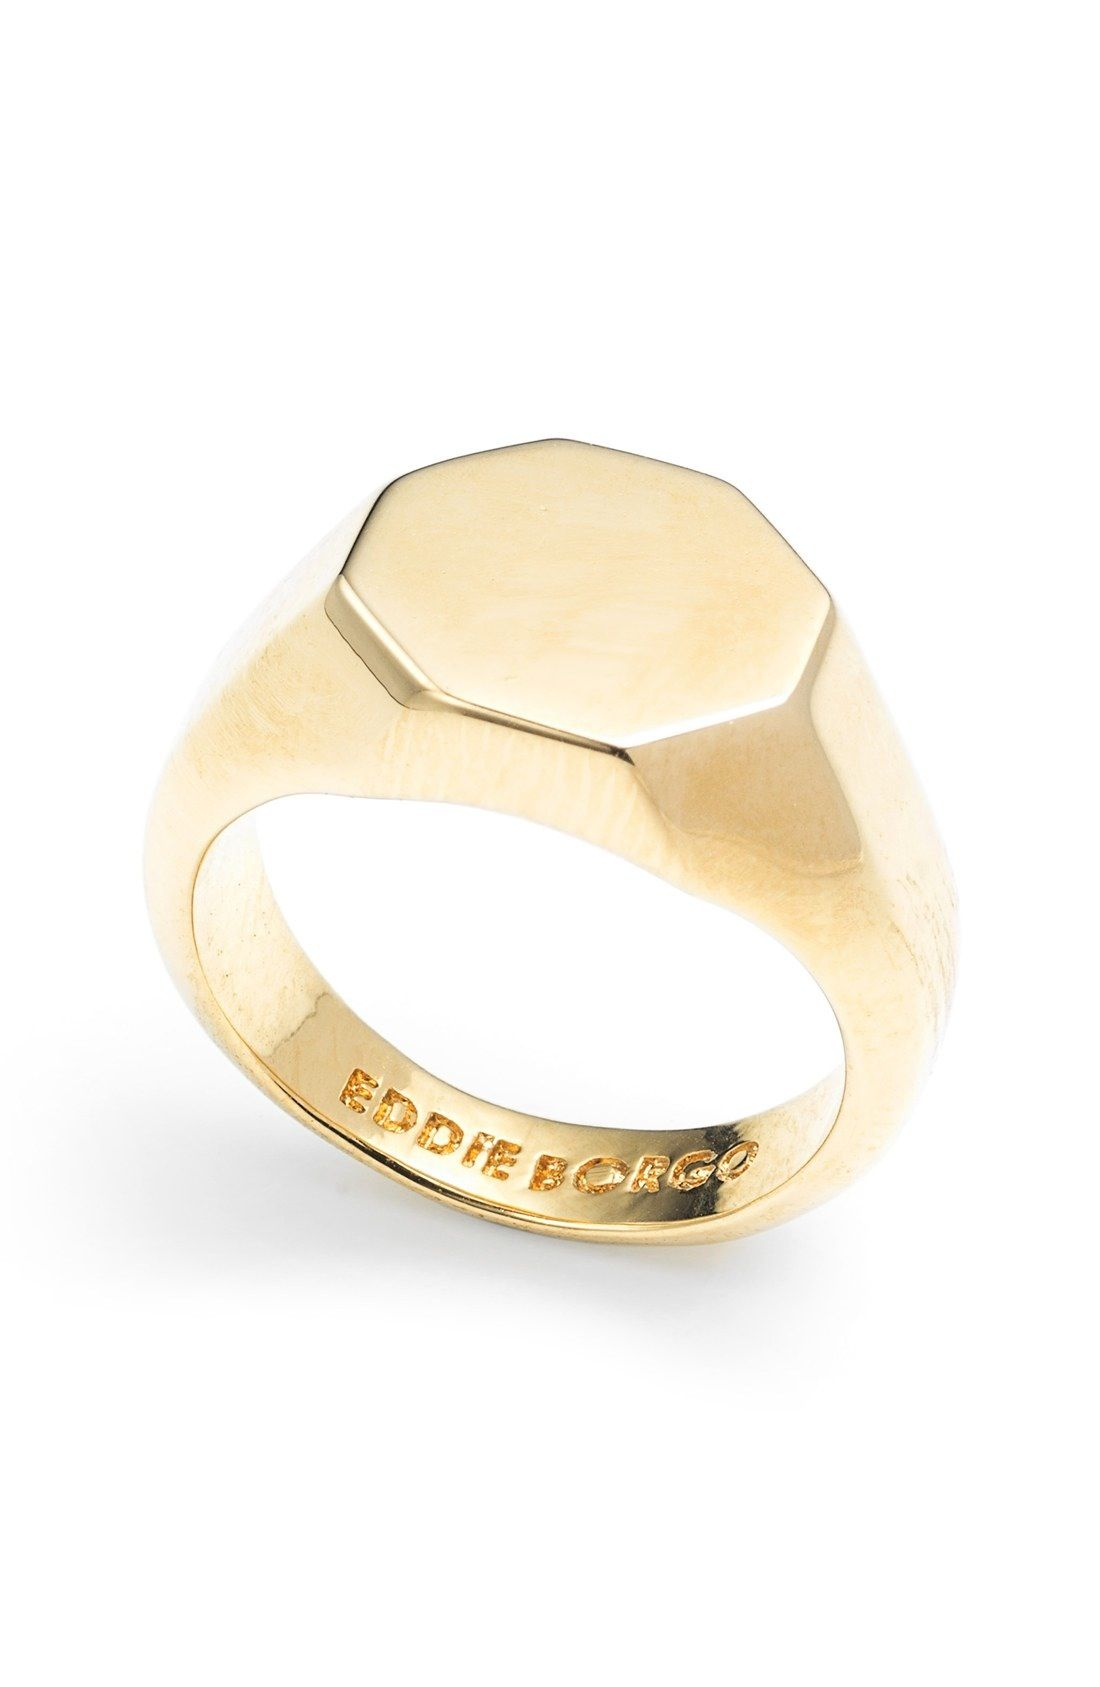 a2d97407 Octagon Signet Ring | signet ringe inspiration | Rings, Signet ring ...